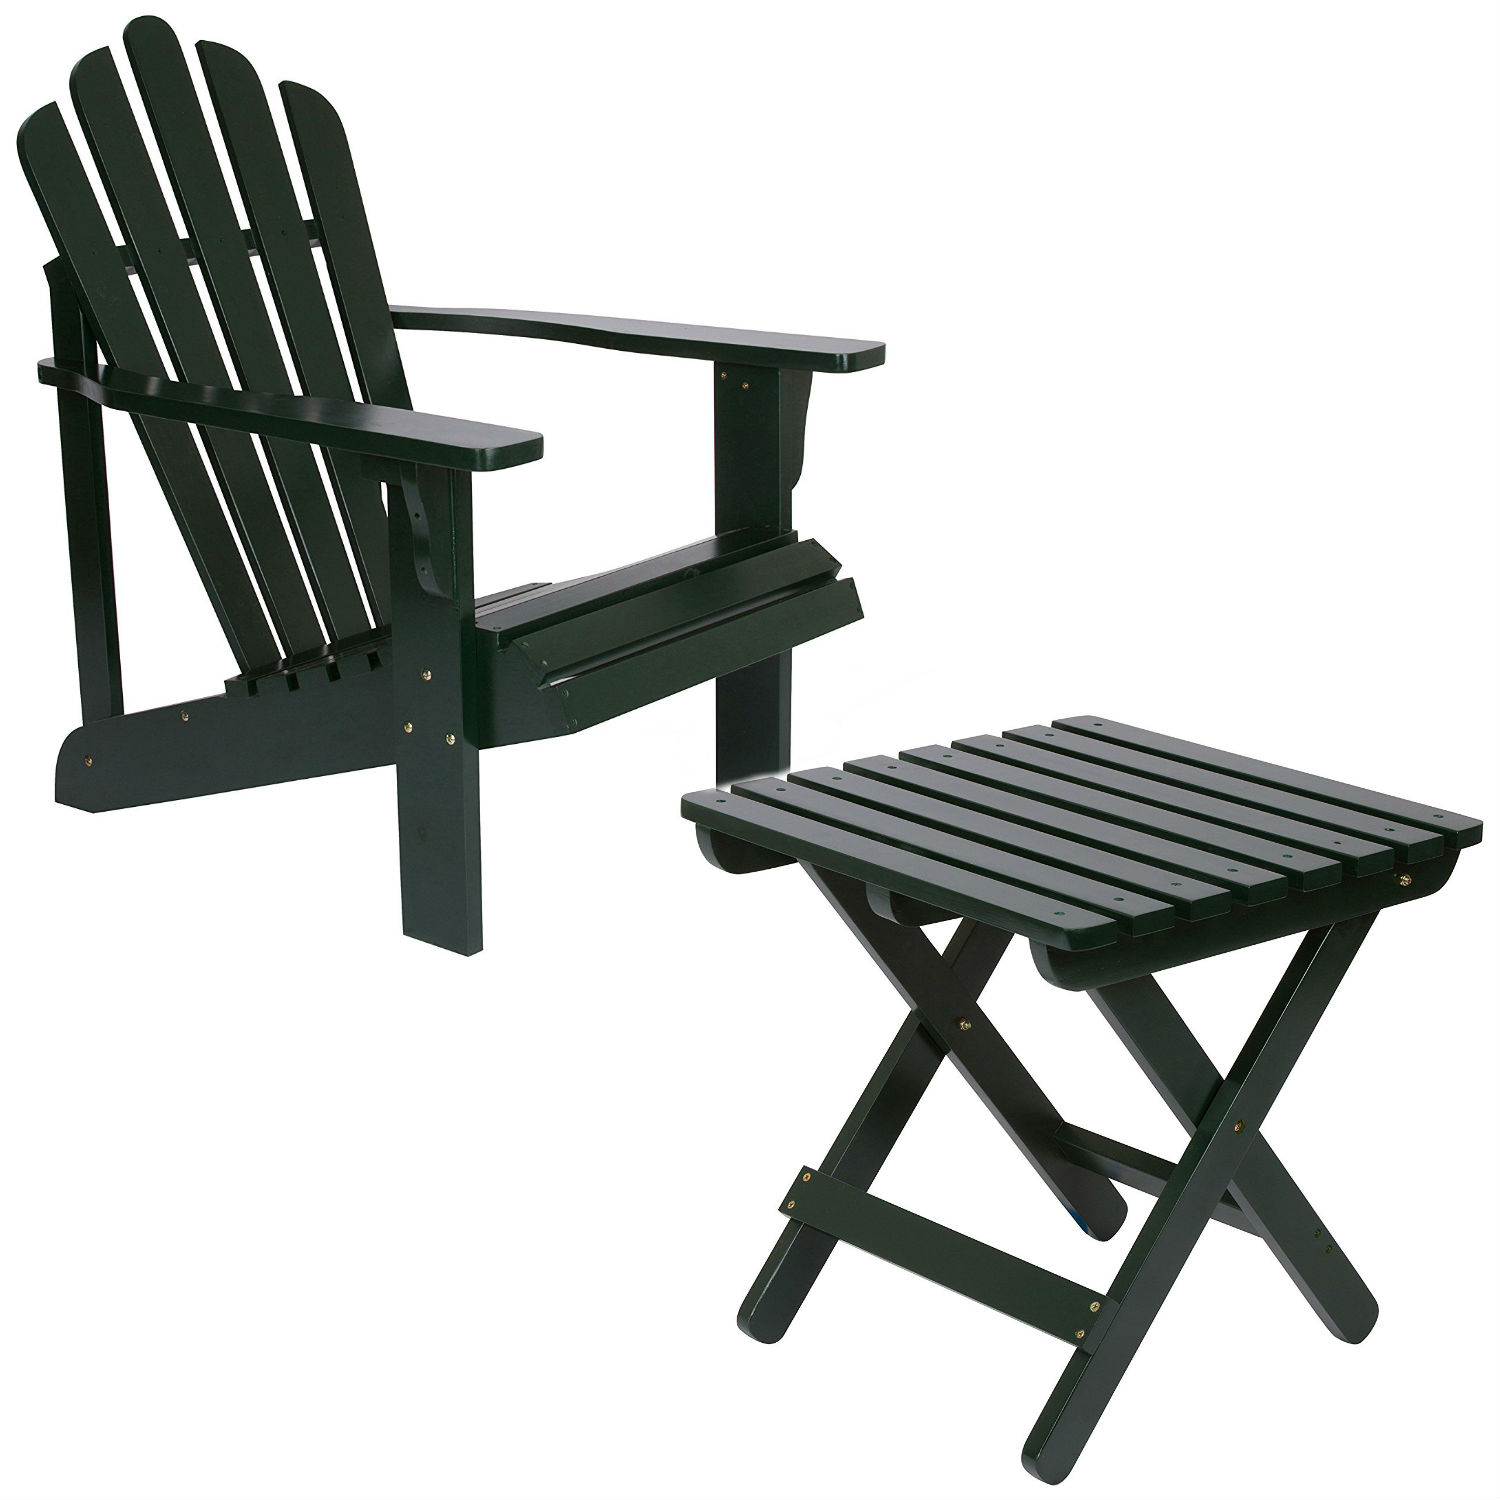 Foldable Adirondack Chair Adirondack Square Folding Table With Westport Adirondack